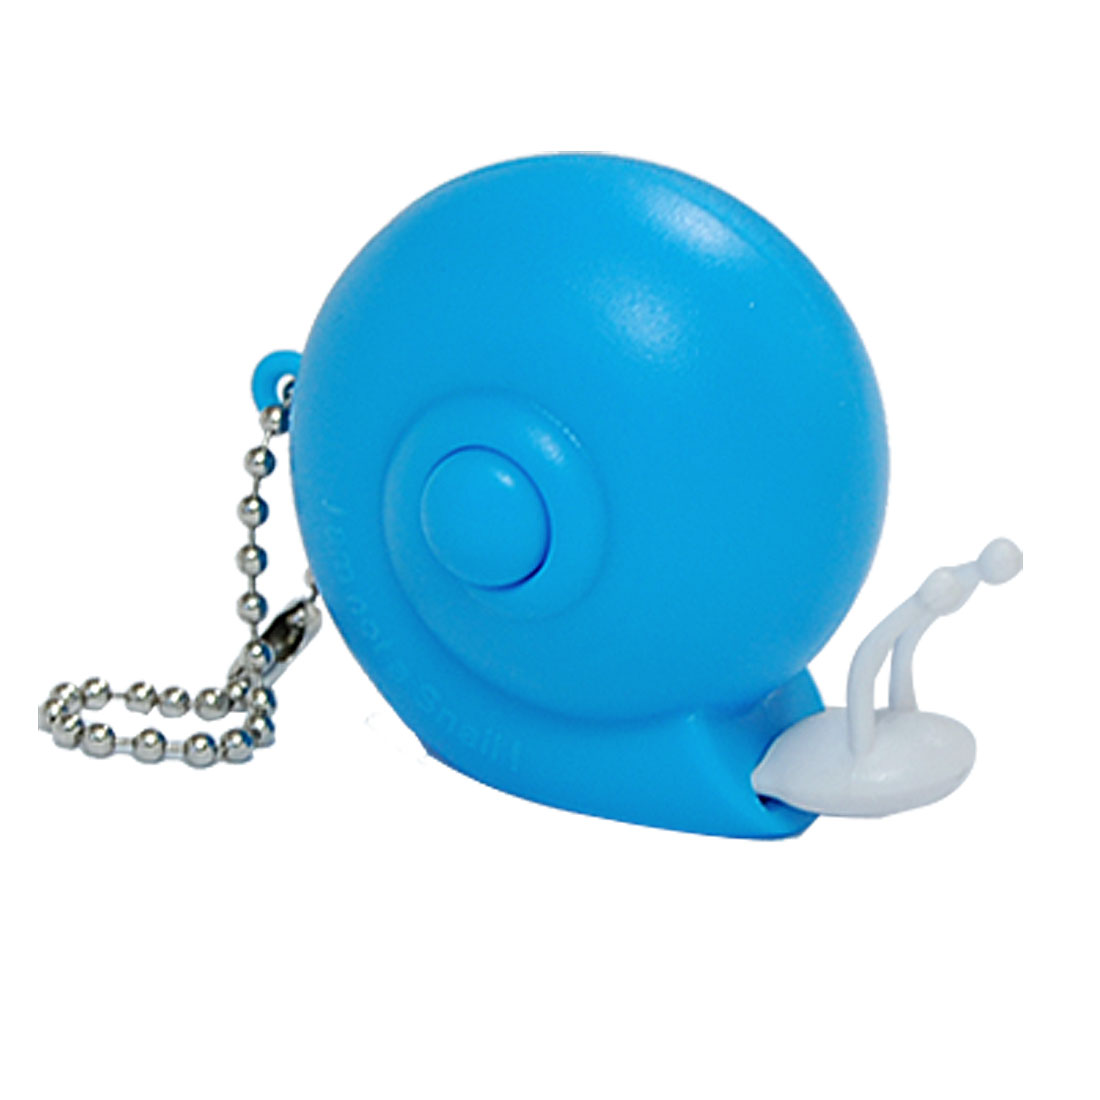 Blue Plastic Snail Tape Measure Ruler With Key Chain 1M 40Inch